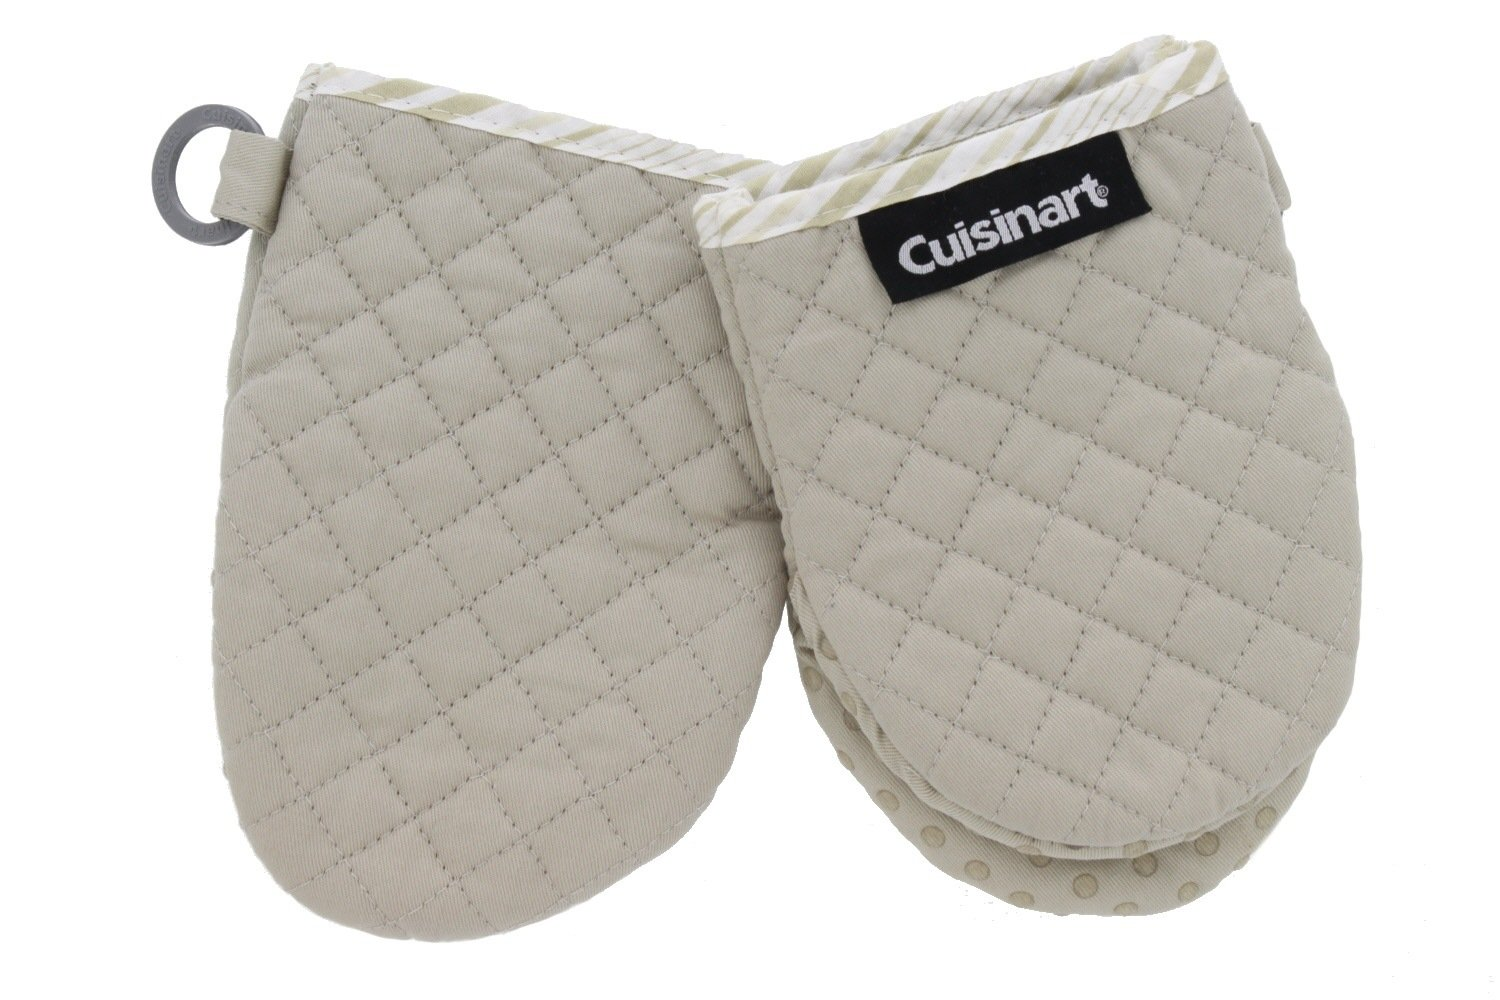 Cuisinart Quilted Mini Kitchen Oven Mitts/Gloves w/Silicone for Easy Gripping, Heat Resistant up to 500 Degrees F- Light Tan w/Tan Stripes